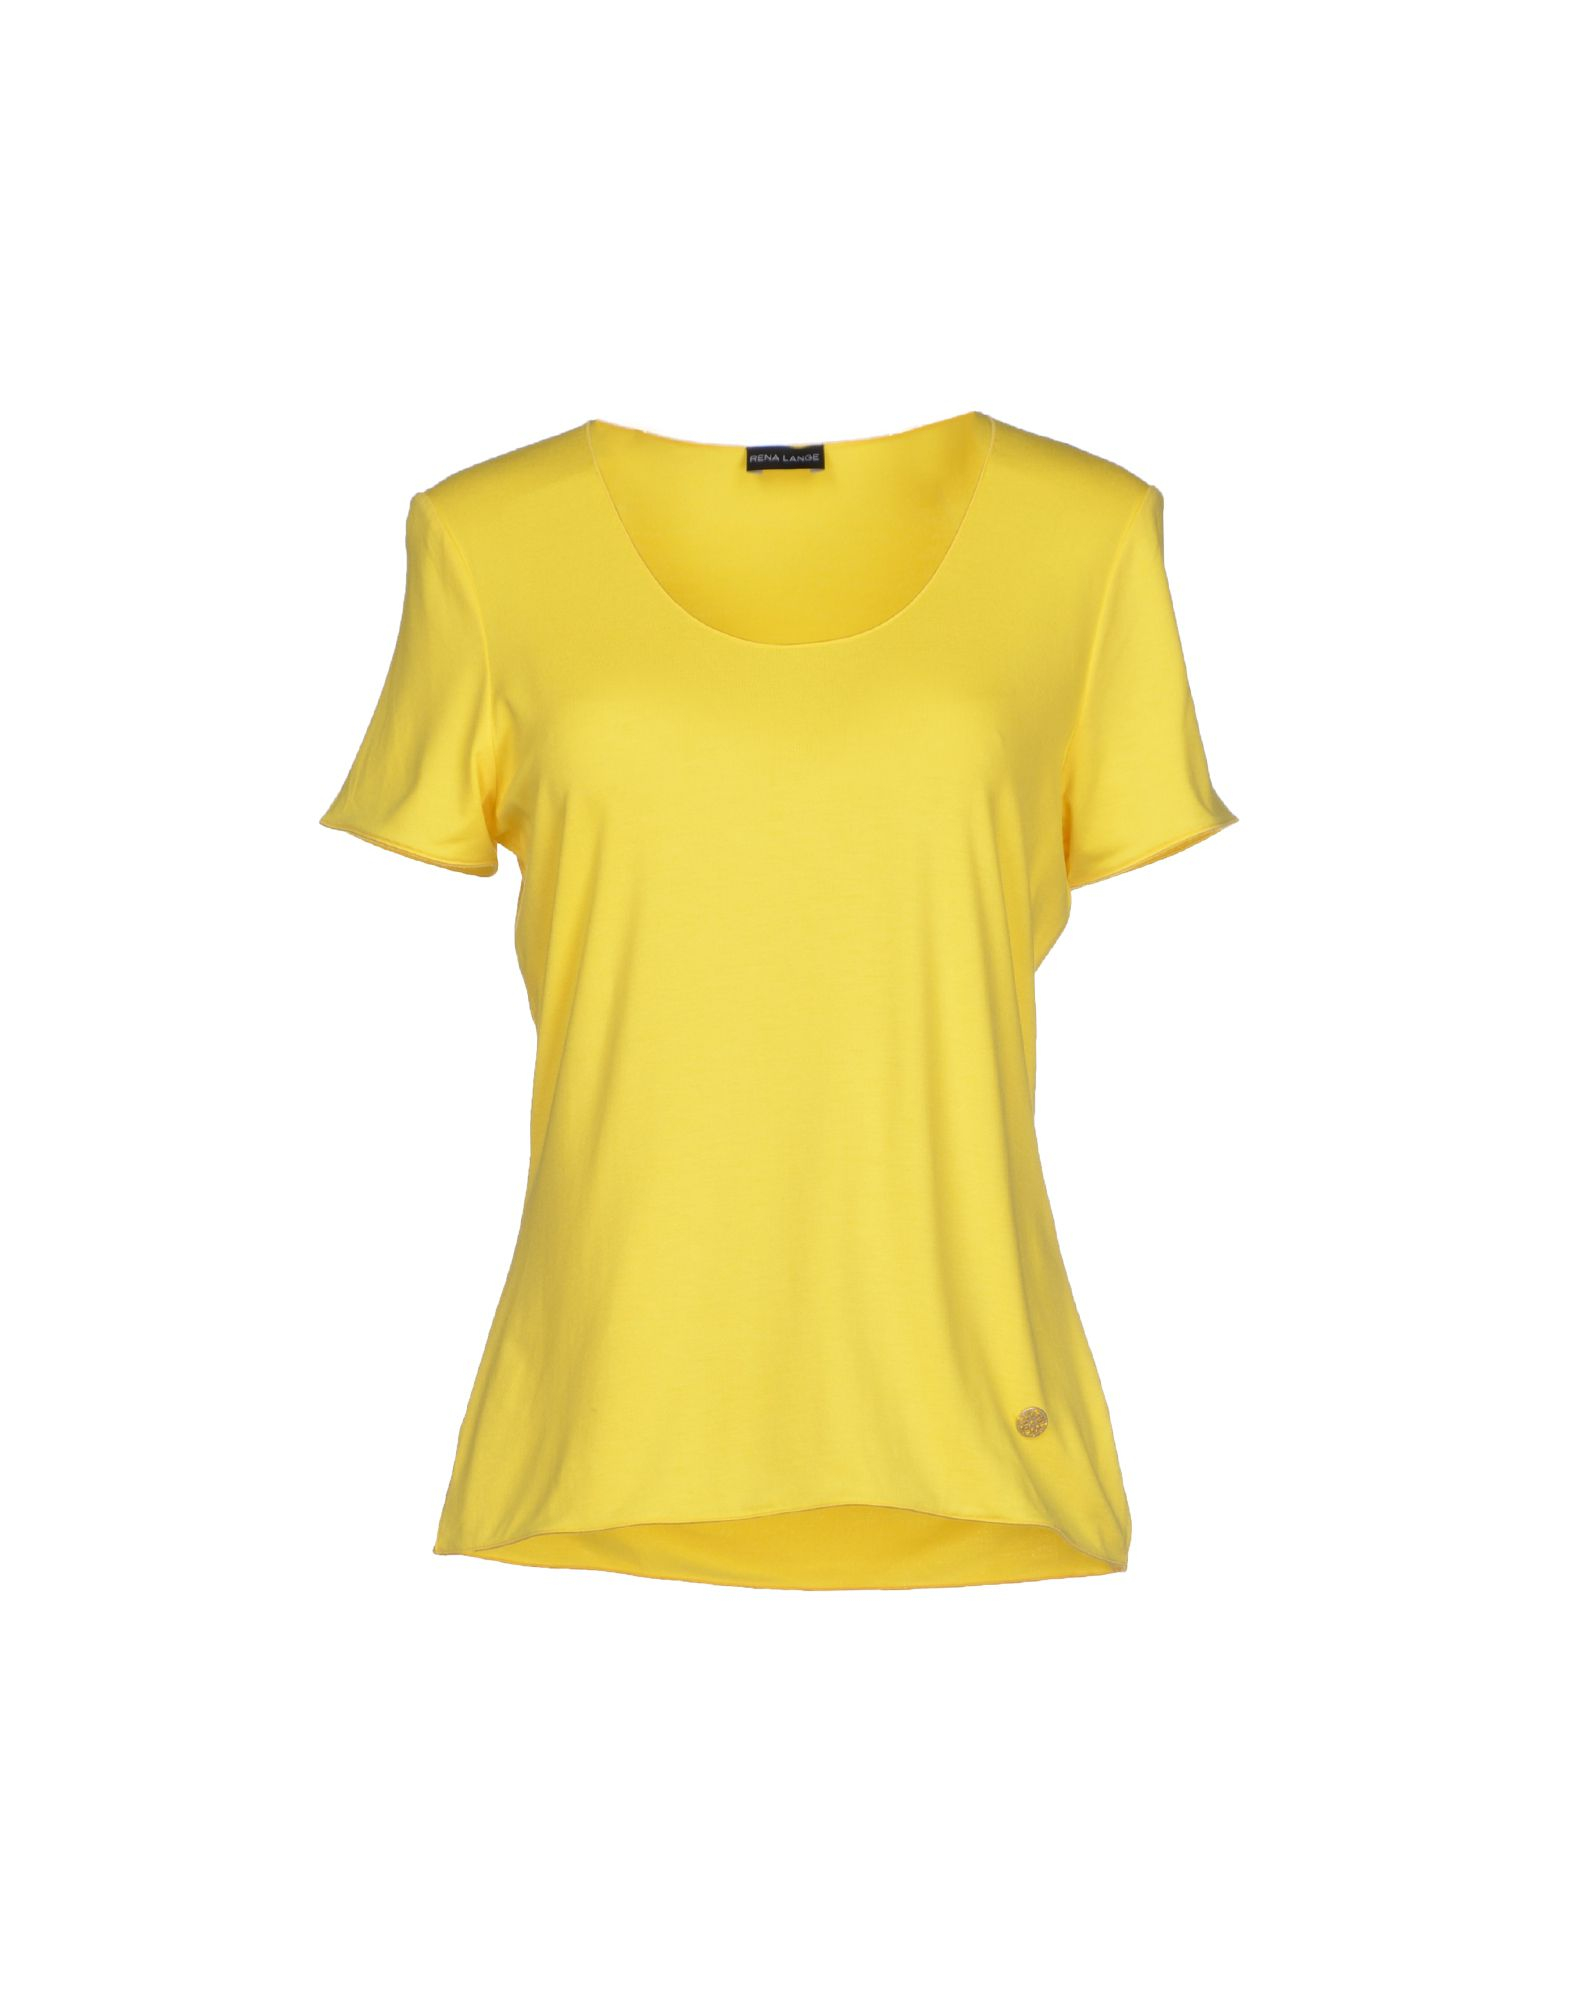 rena lange t shirt in yellow lyst. Black Bedroom Furniture Sets. Home Design Ideas